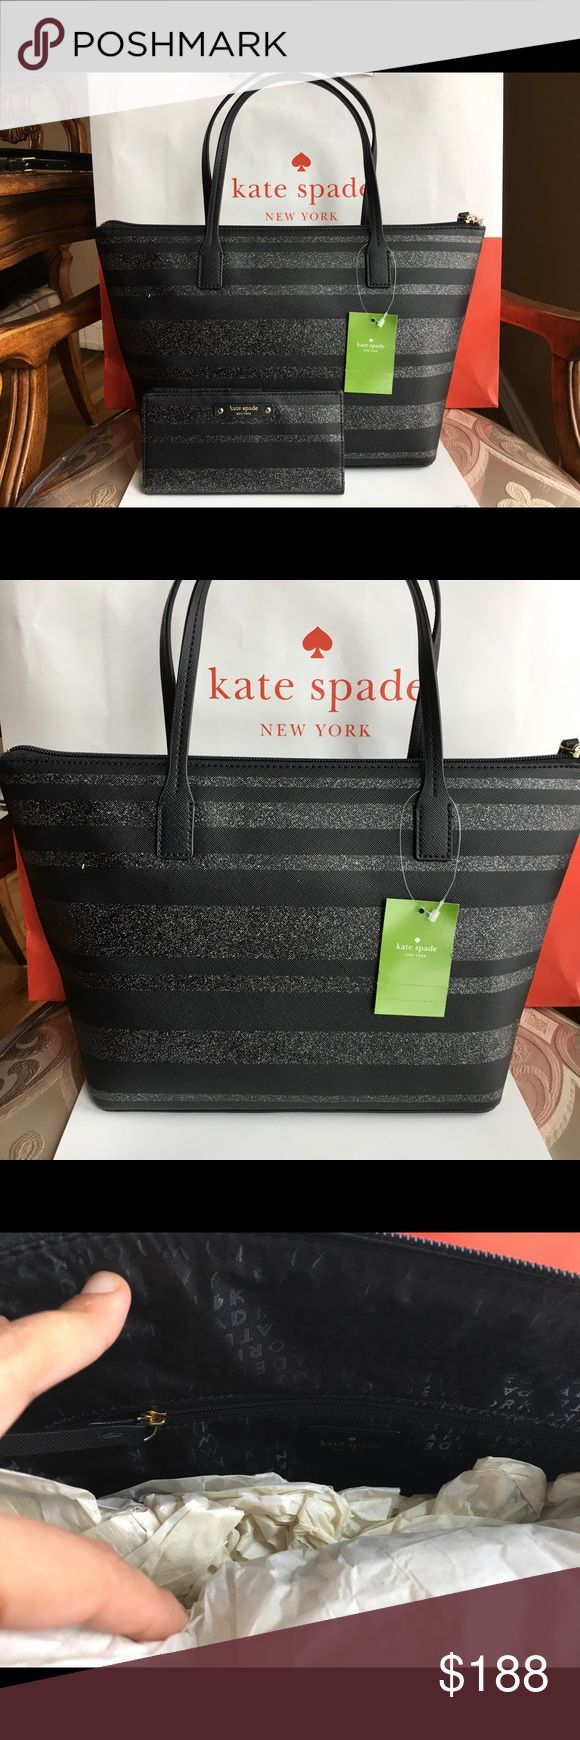 "🍀Kate Spade Hani Small Tote and black Wallet🍀 Brand new Kate Spade Hani tote bag and matching wallet  Color: Black/ striped Glitter Beautiful tote small bag with matching wallet. It comes with care instructions and tags  Bag measurements: 14.5""x 9""x 5"" with 6.25"" handle drop Pattern: Striped Glitter It has top zip. Inside has a big zip pocket and two small pockets Retail:$169  Wallet measurements: 3.5""x 6.75"" Gold hardware with snap closure Coin zip pocket on the outside 12 credit cards…"